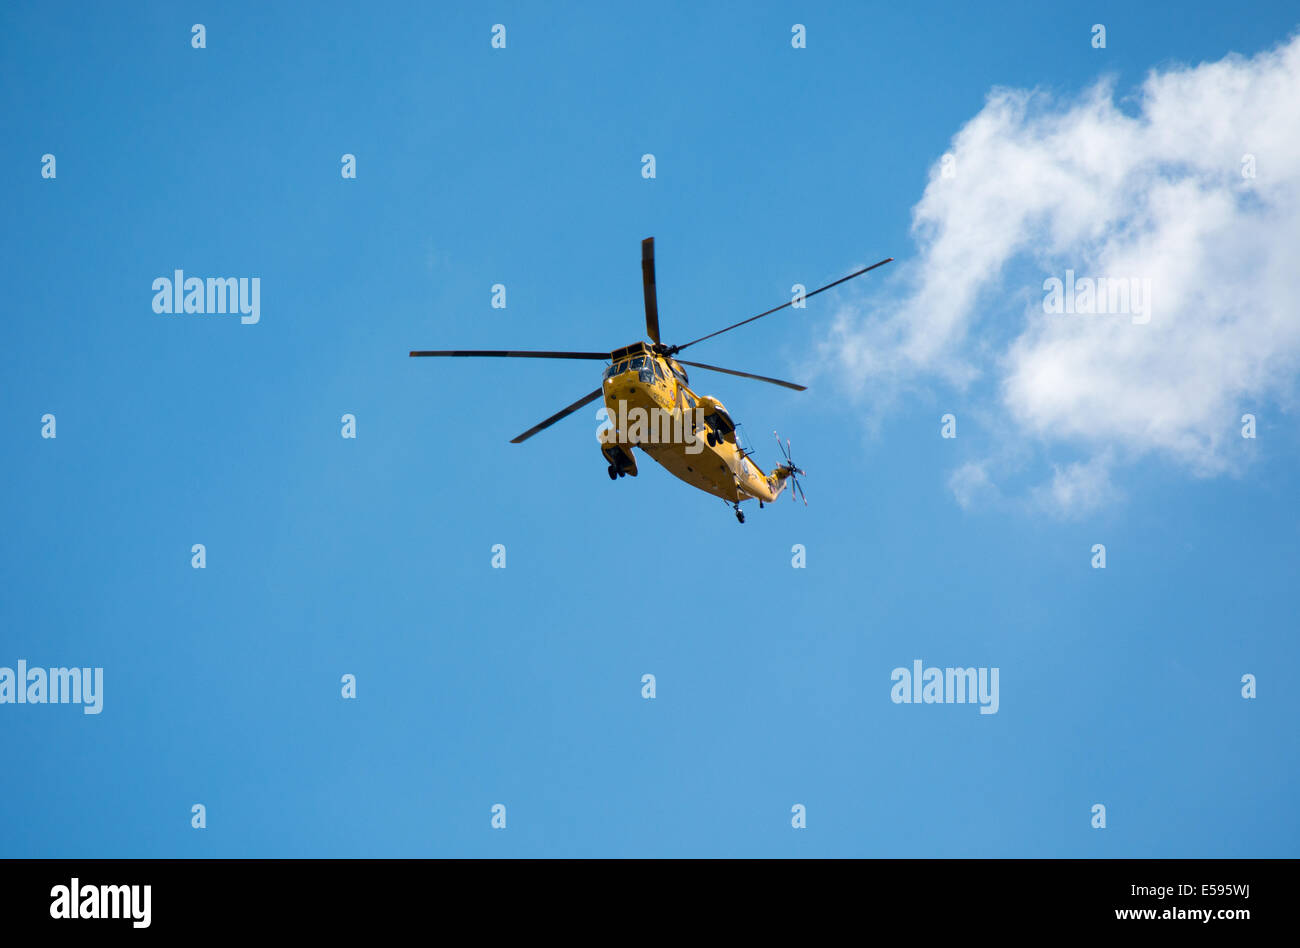 A Royal Air Force Sea King search and rescue (SAR) helicopter flies above the River Thames in London. - Stock Image